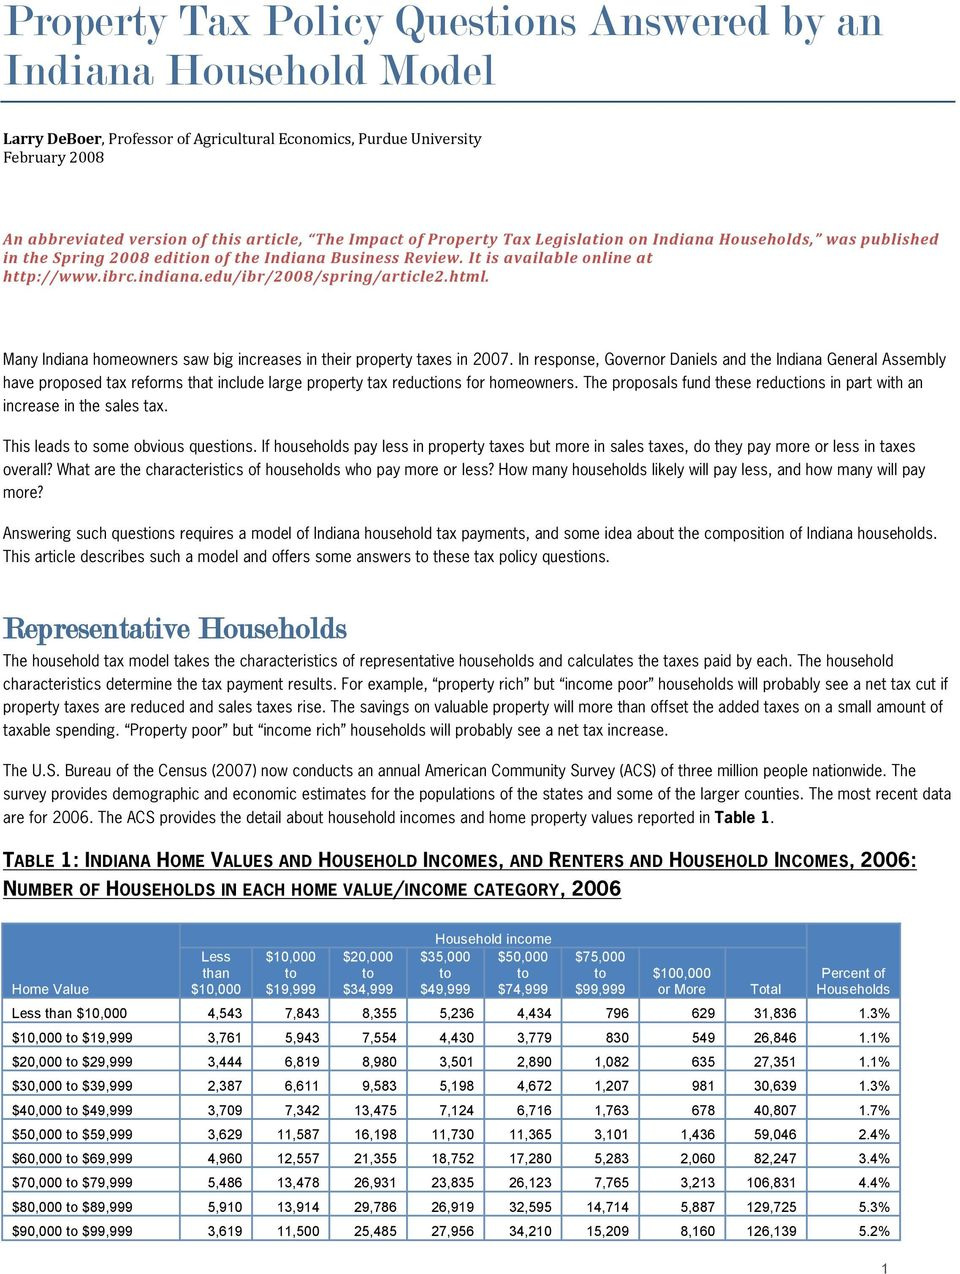 edu/ibr/2008/spring/article2.html H. Many Indiana homeowners saw big increases in their property taxes in 2007.